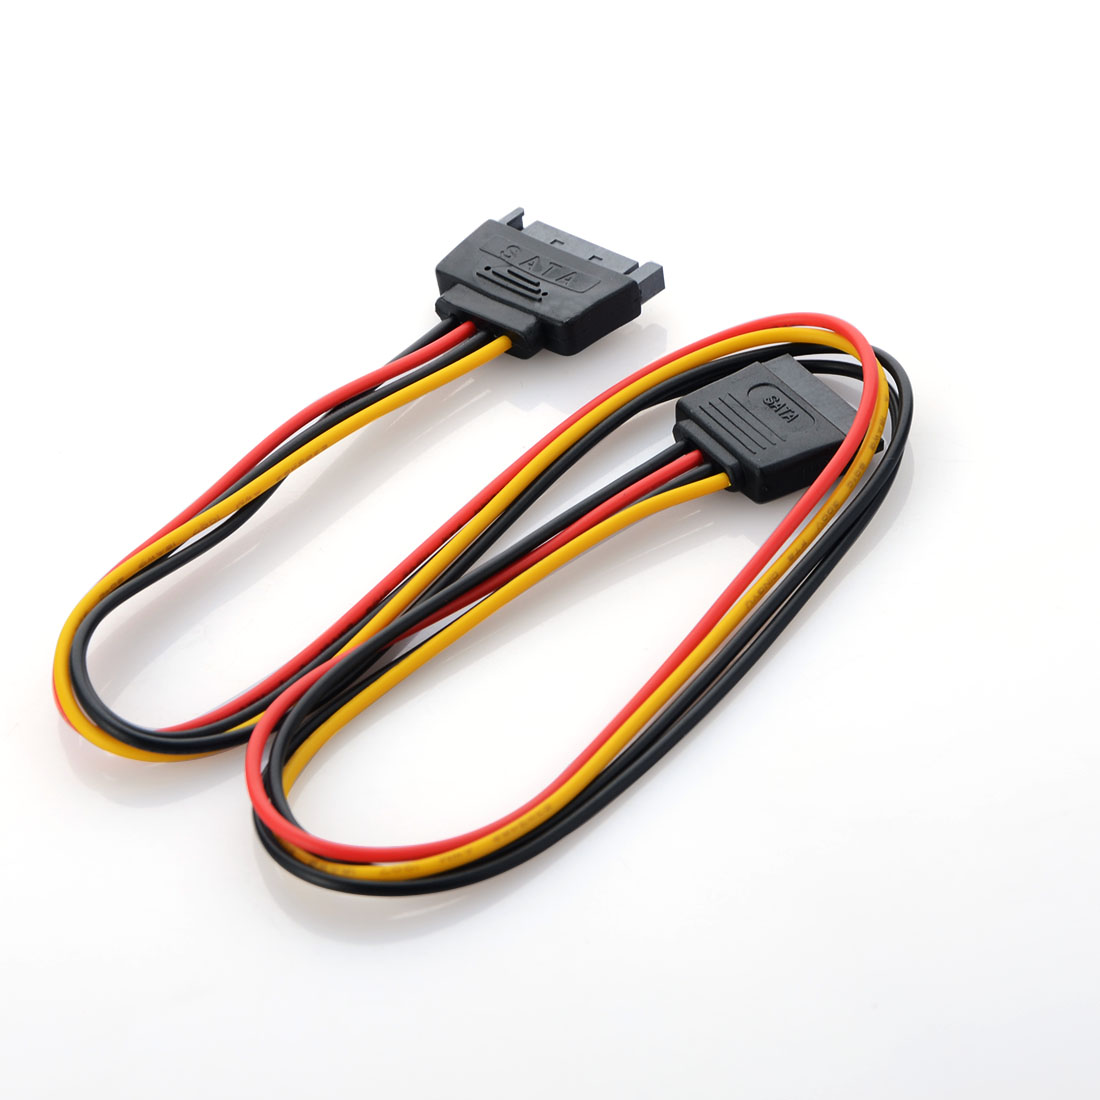 50cm New <font><b>Power</b></font> <font><b>Adapter</b></font> Cable 15 Pin <font><b>SATA</b></font> Male <font><b>to</b></font> Dual Molex 4 Pin <font><b>IDE</b></font> HDD Female image